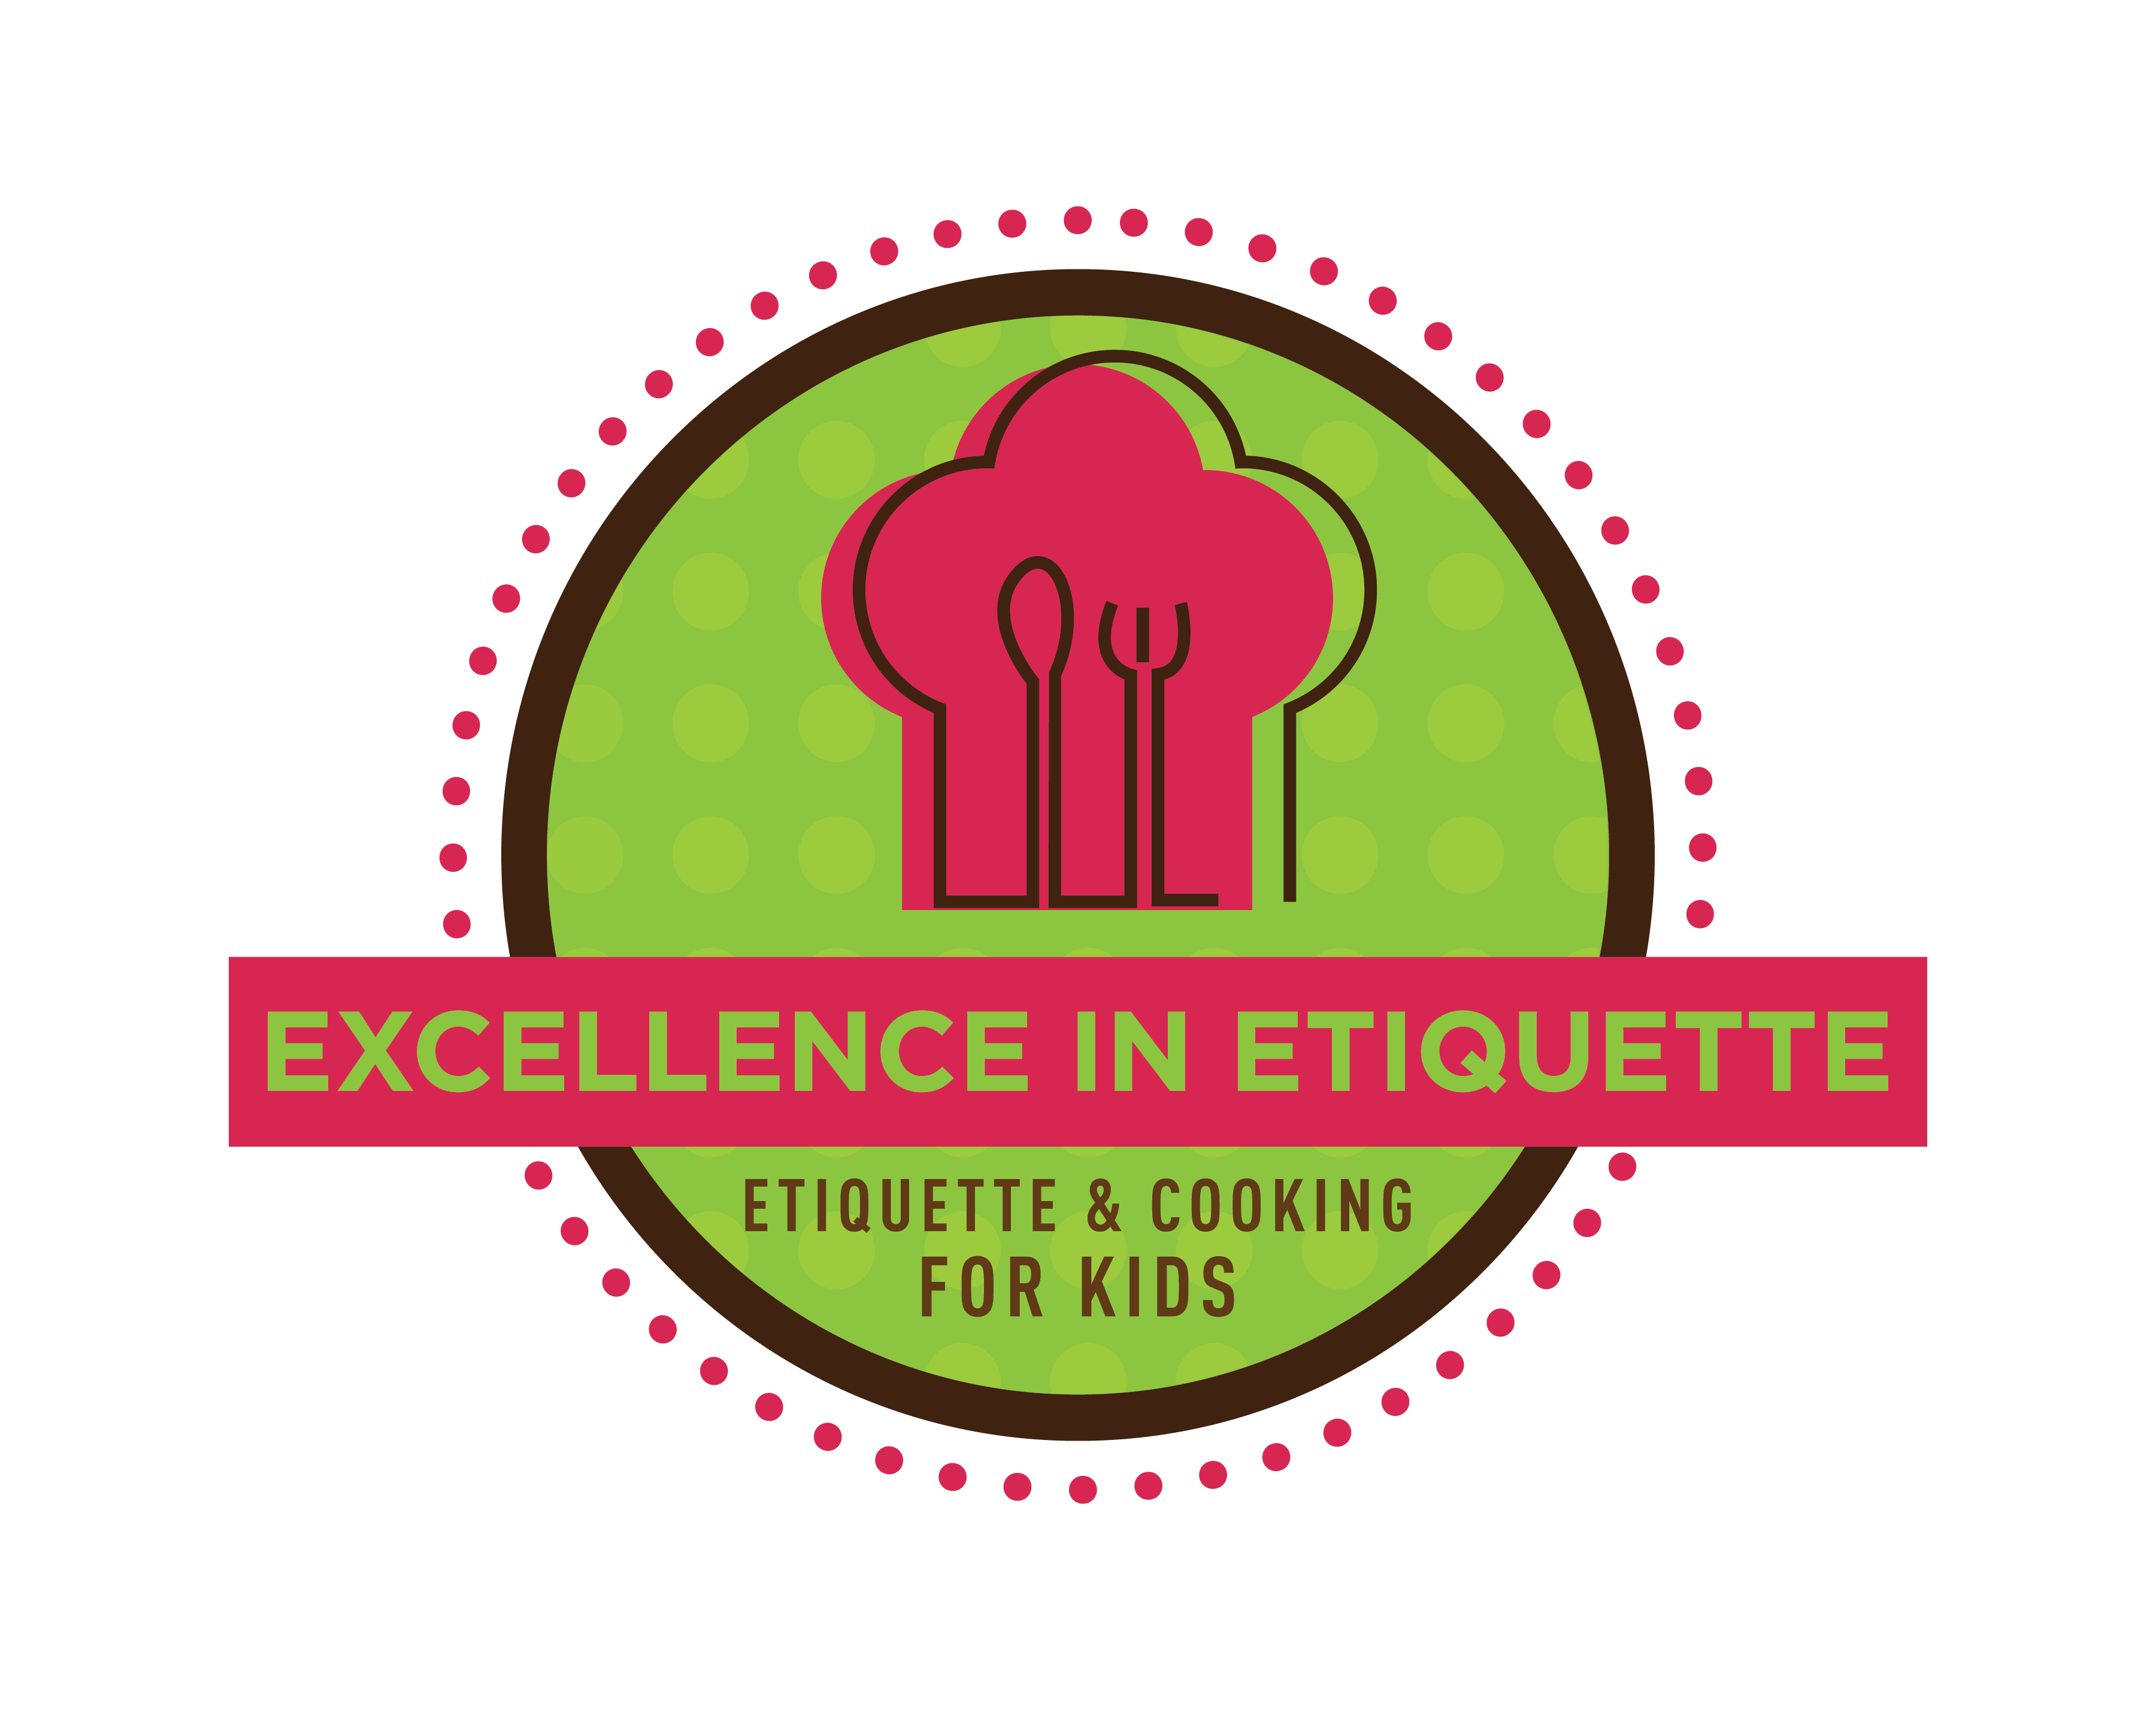 Excellence In Etiquette